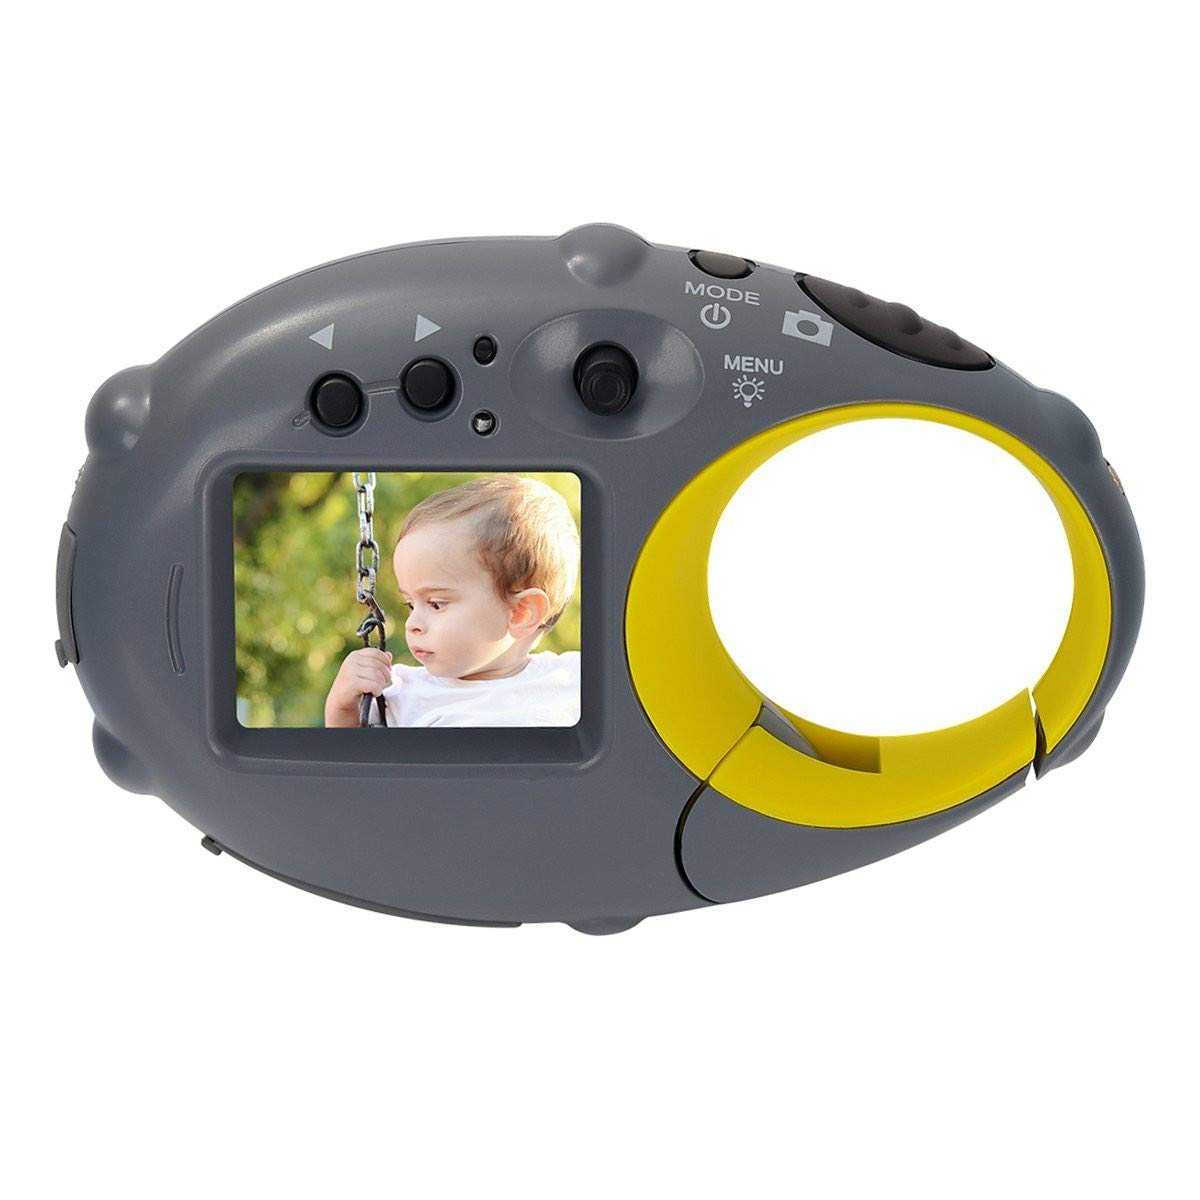 Sdoveb Mini Kids Camera, Digital Camera for Children Kids Photo Camera Action Camcorder Compact Camera 1280P Video 500 Million Pixels 1.5-inch Color Screen (Yellow) by Sdoveb (Image #1)